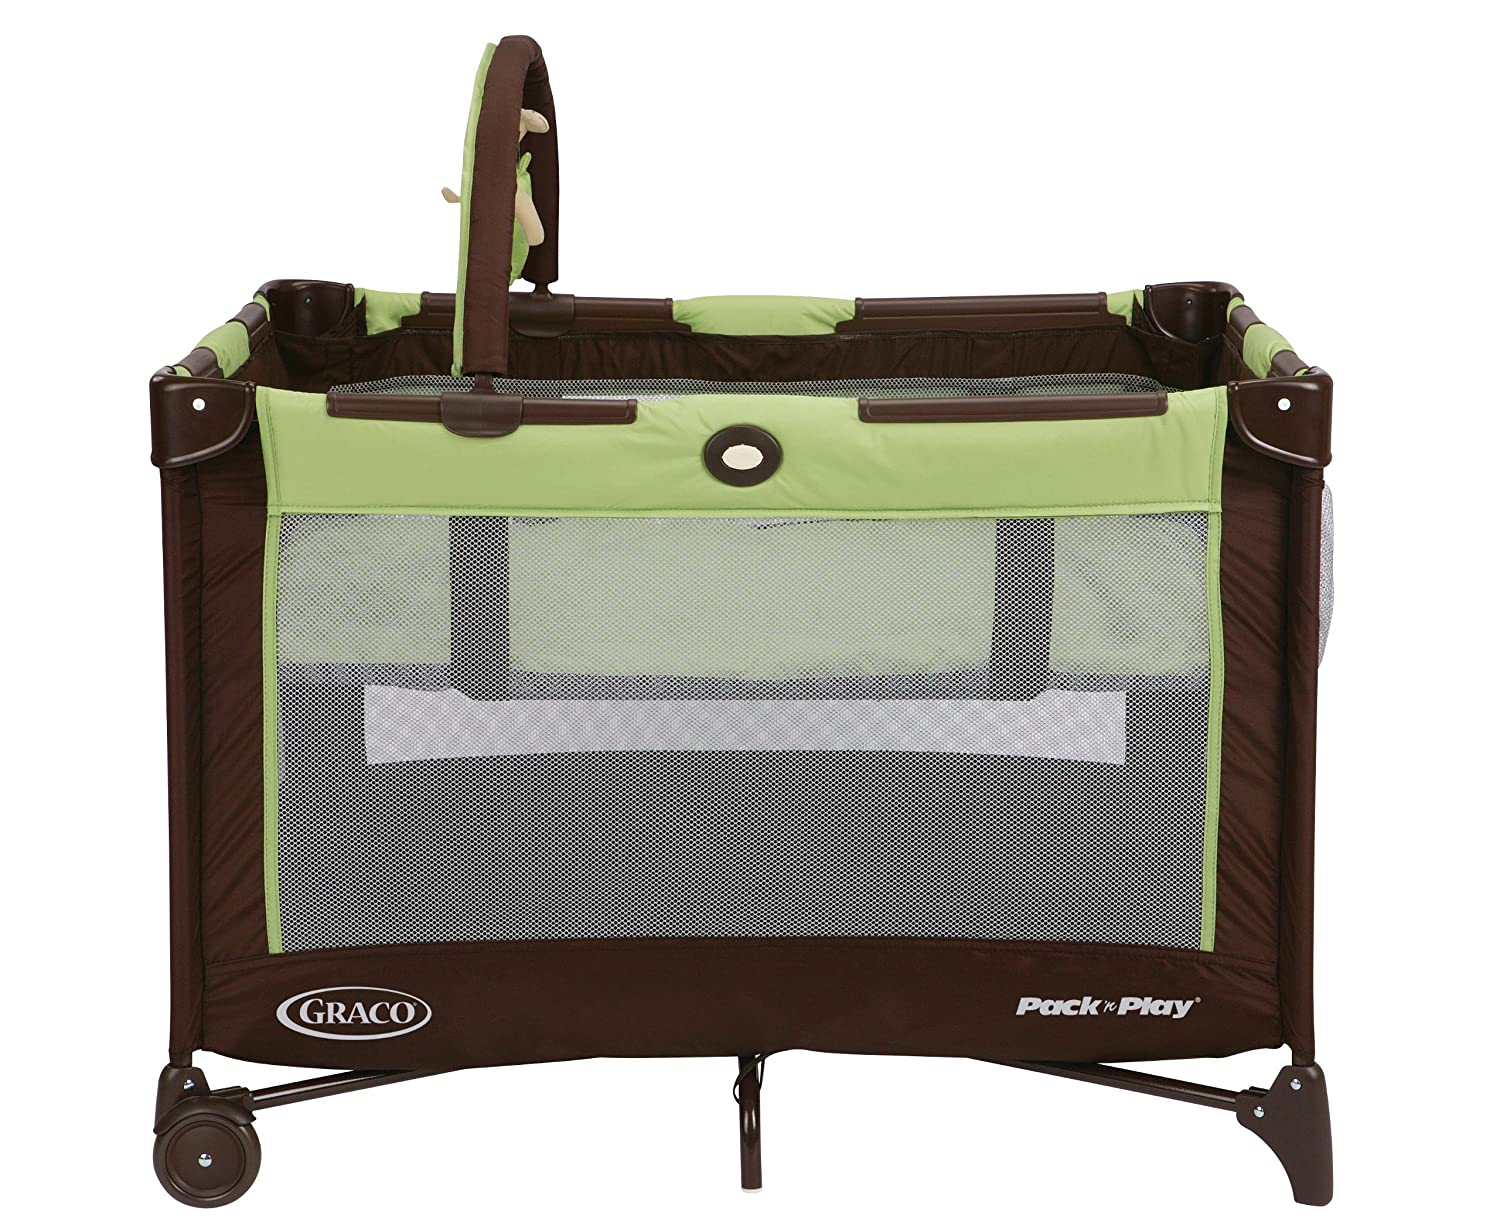 Graco toddler playard portable beds baby pack play infant bassinet folding green ebay - Futon portatil ...